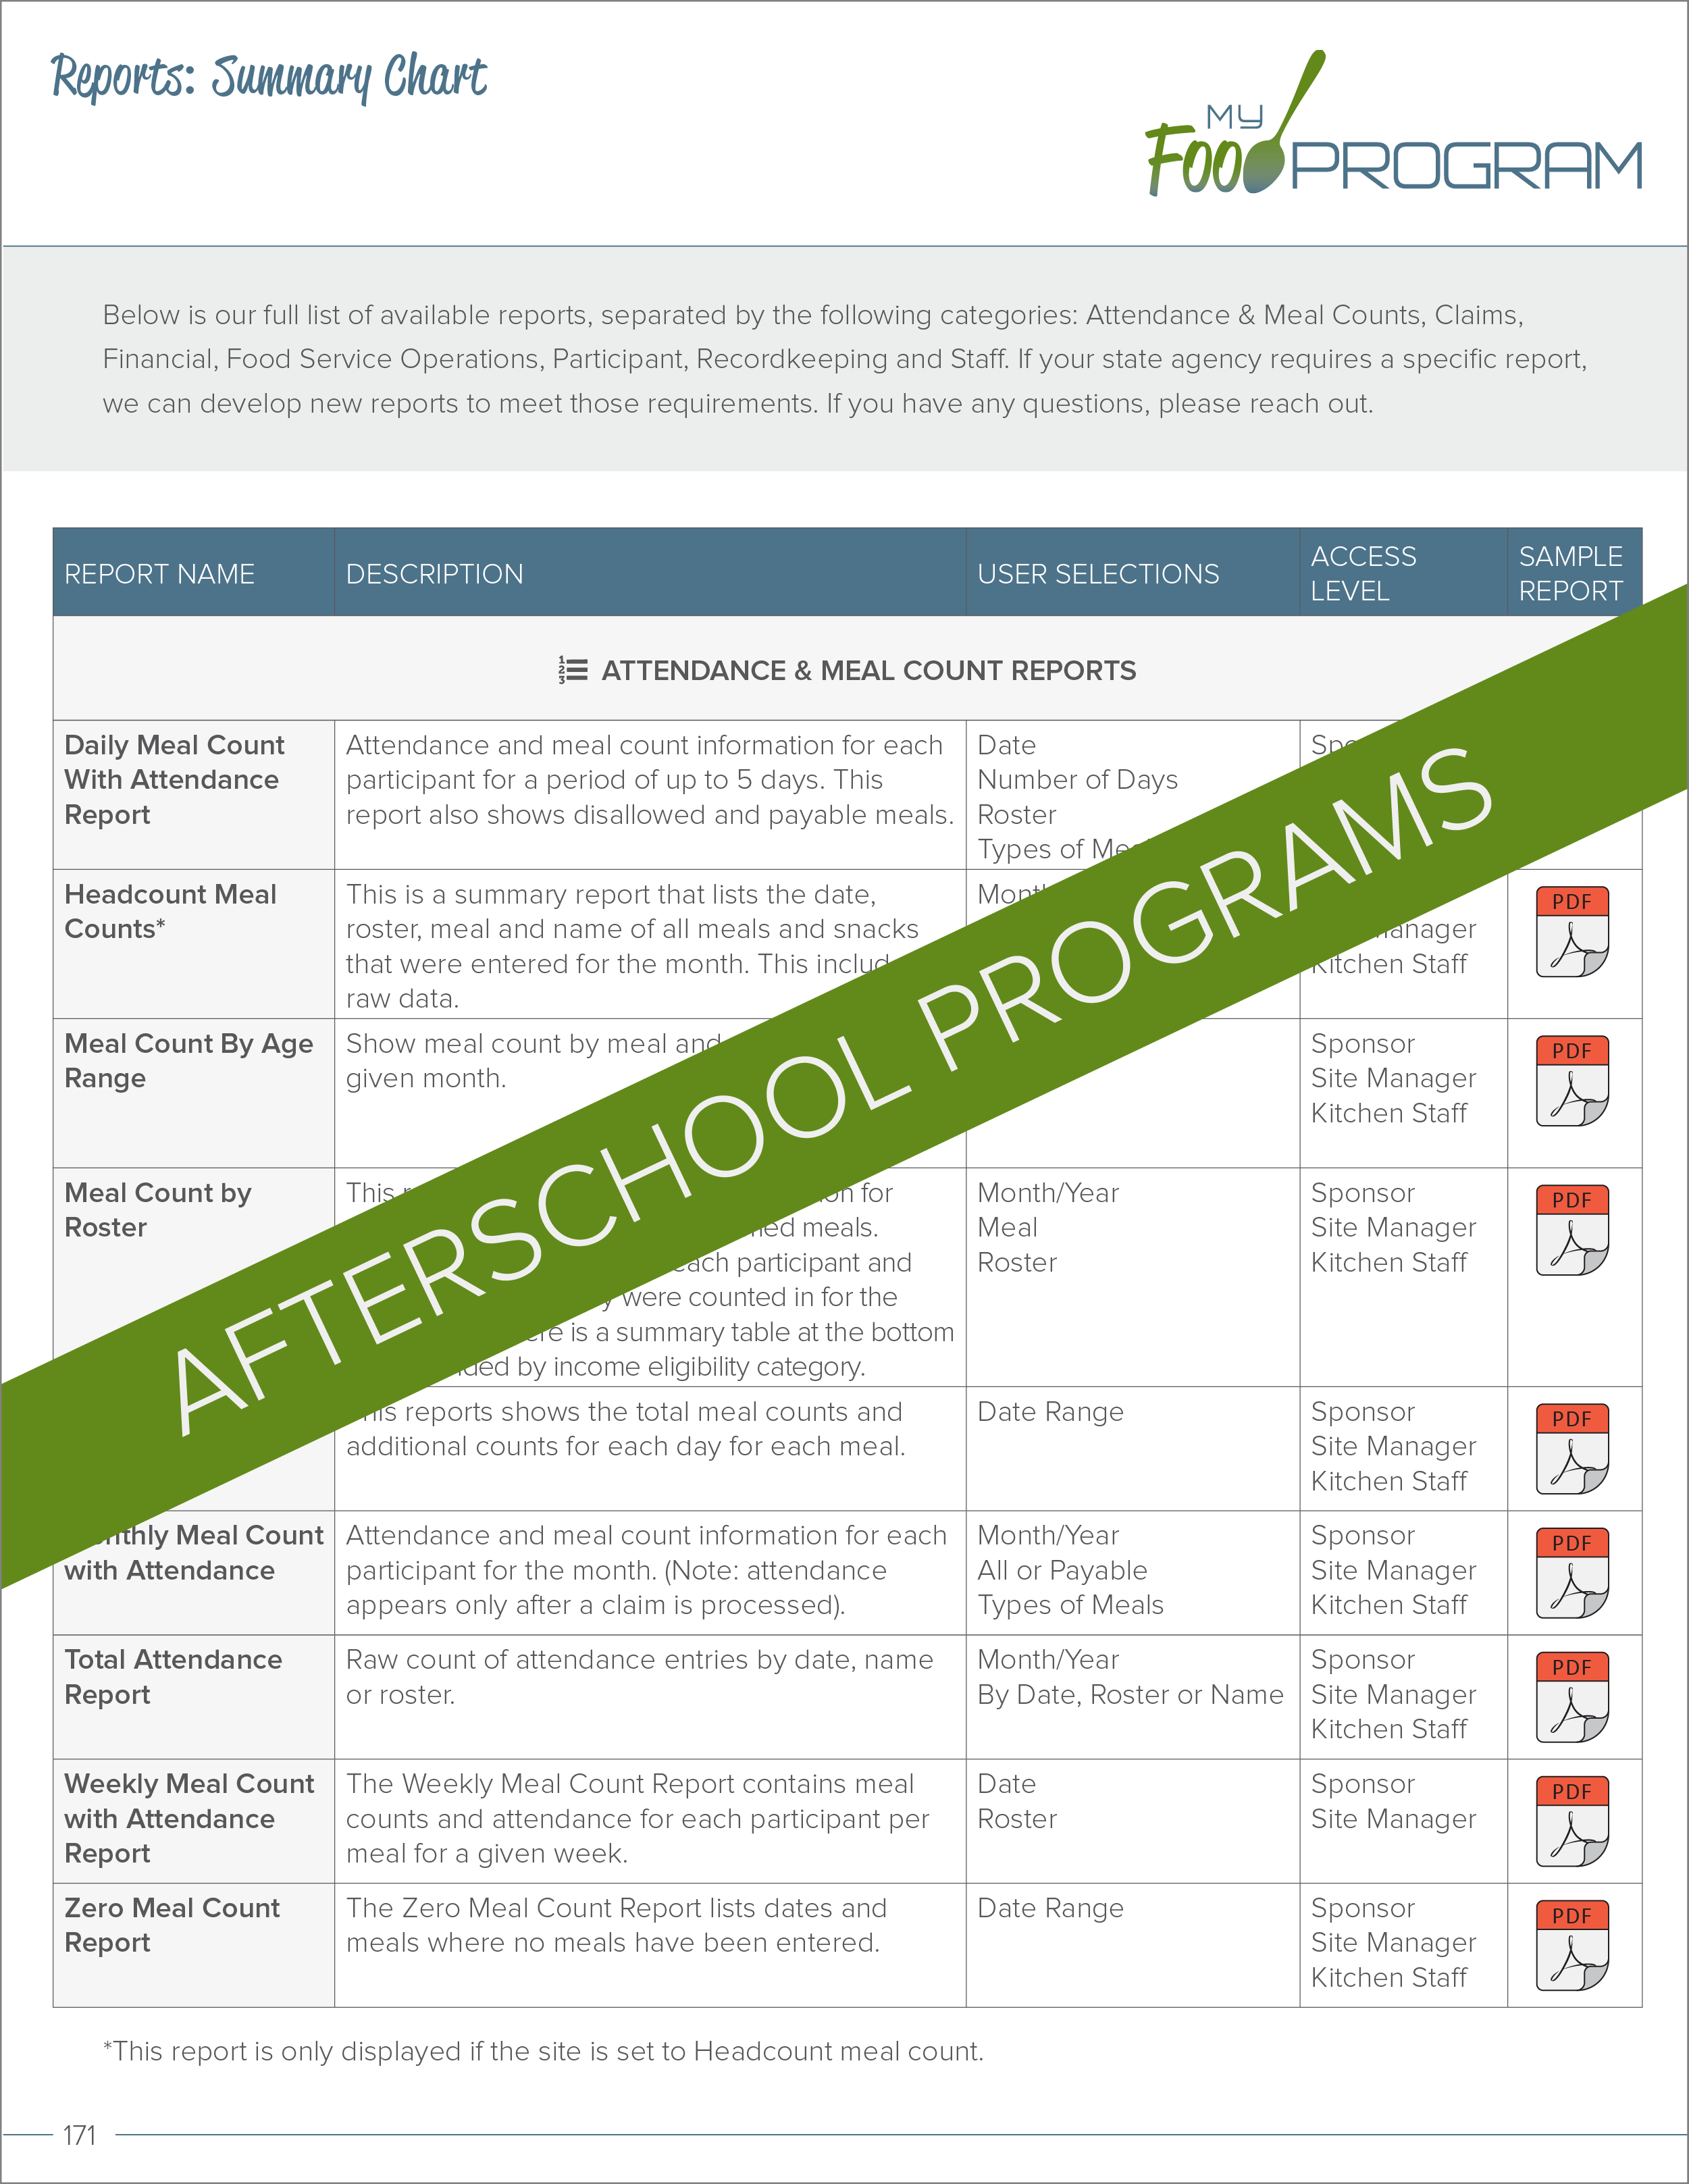 Afterschool Programs Reports Summary Chart